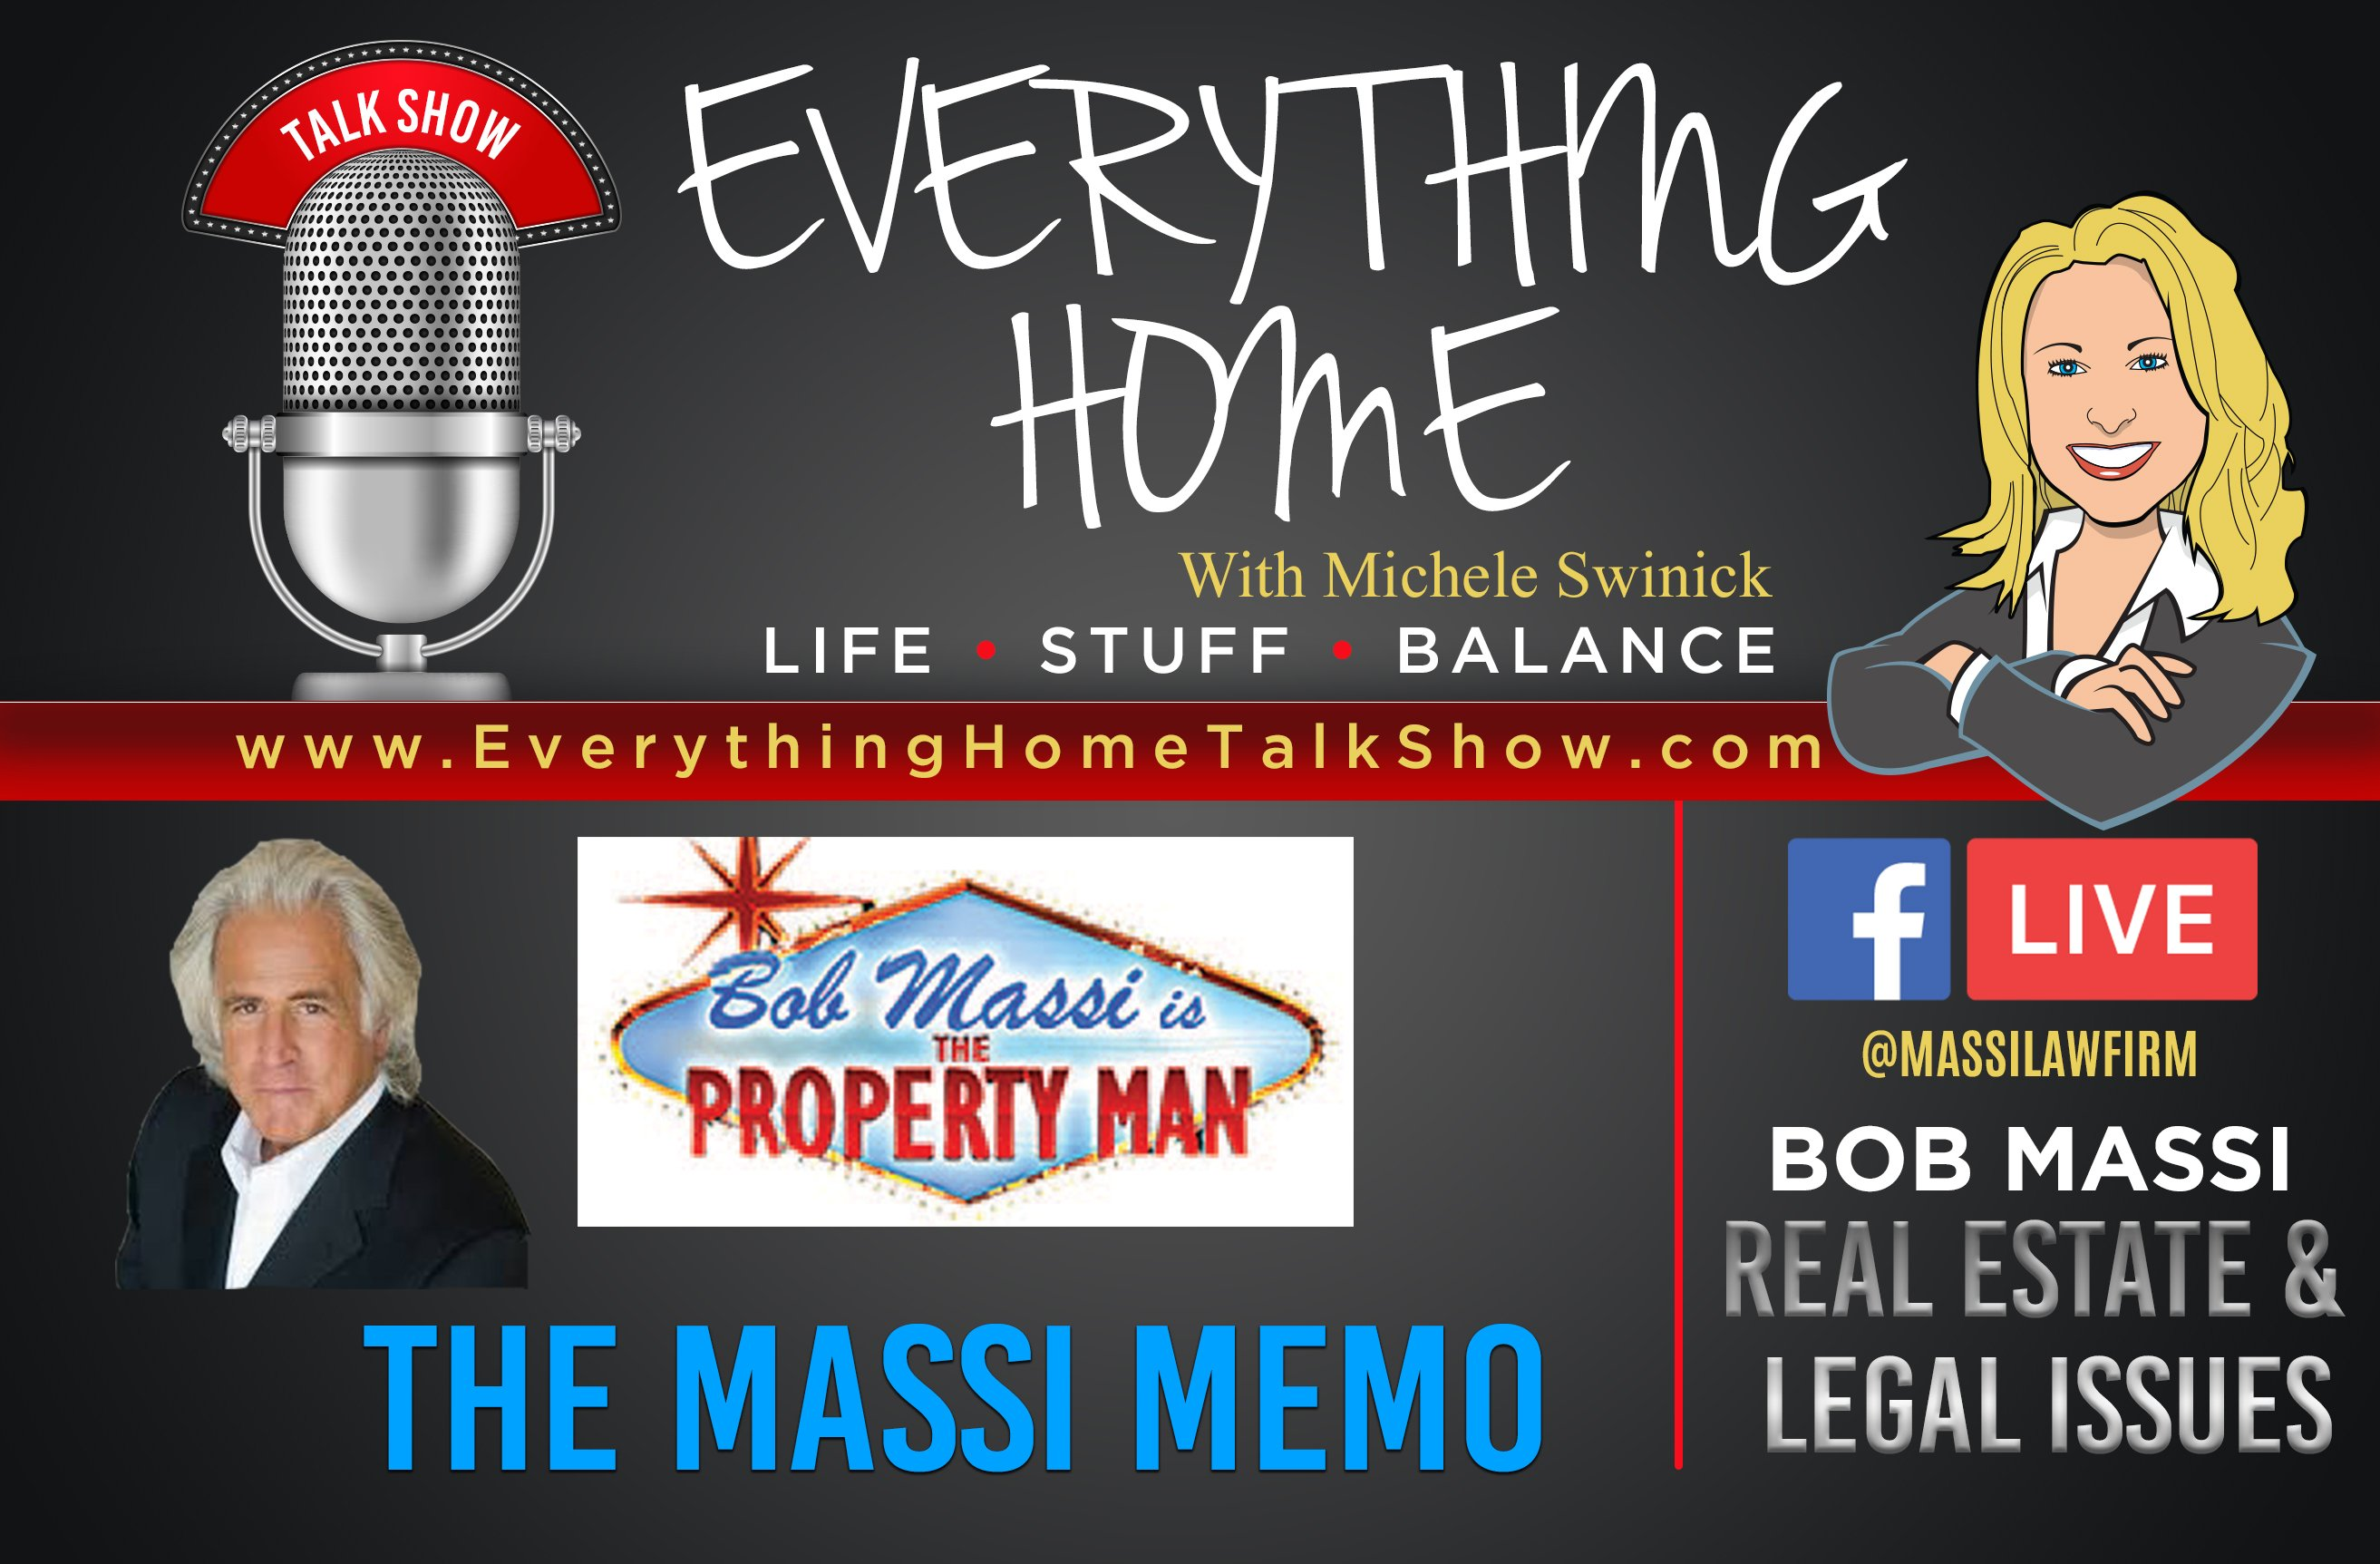 Everything Home Talk Radio Show & Podcast - The Massi Memo - Bob Massi - BANNER